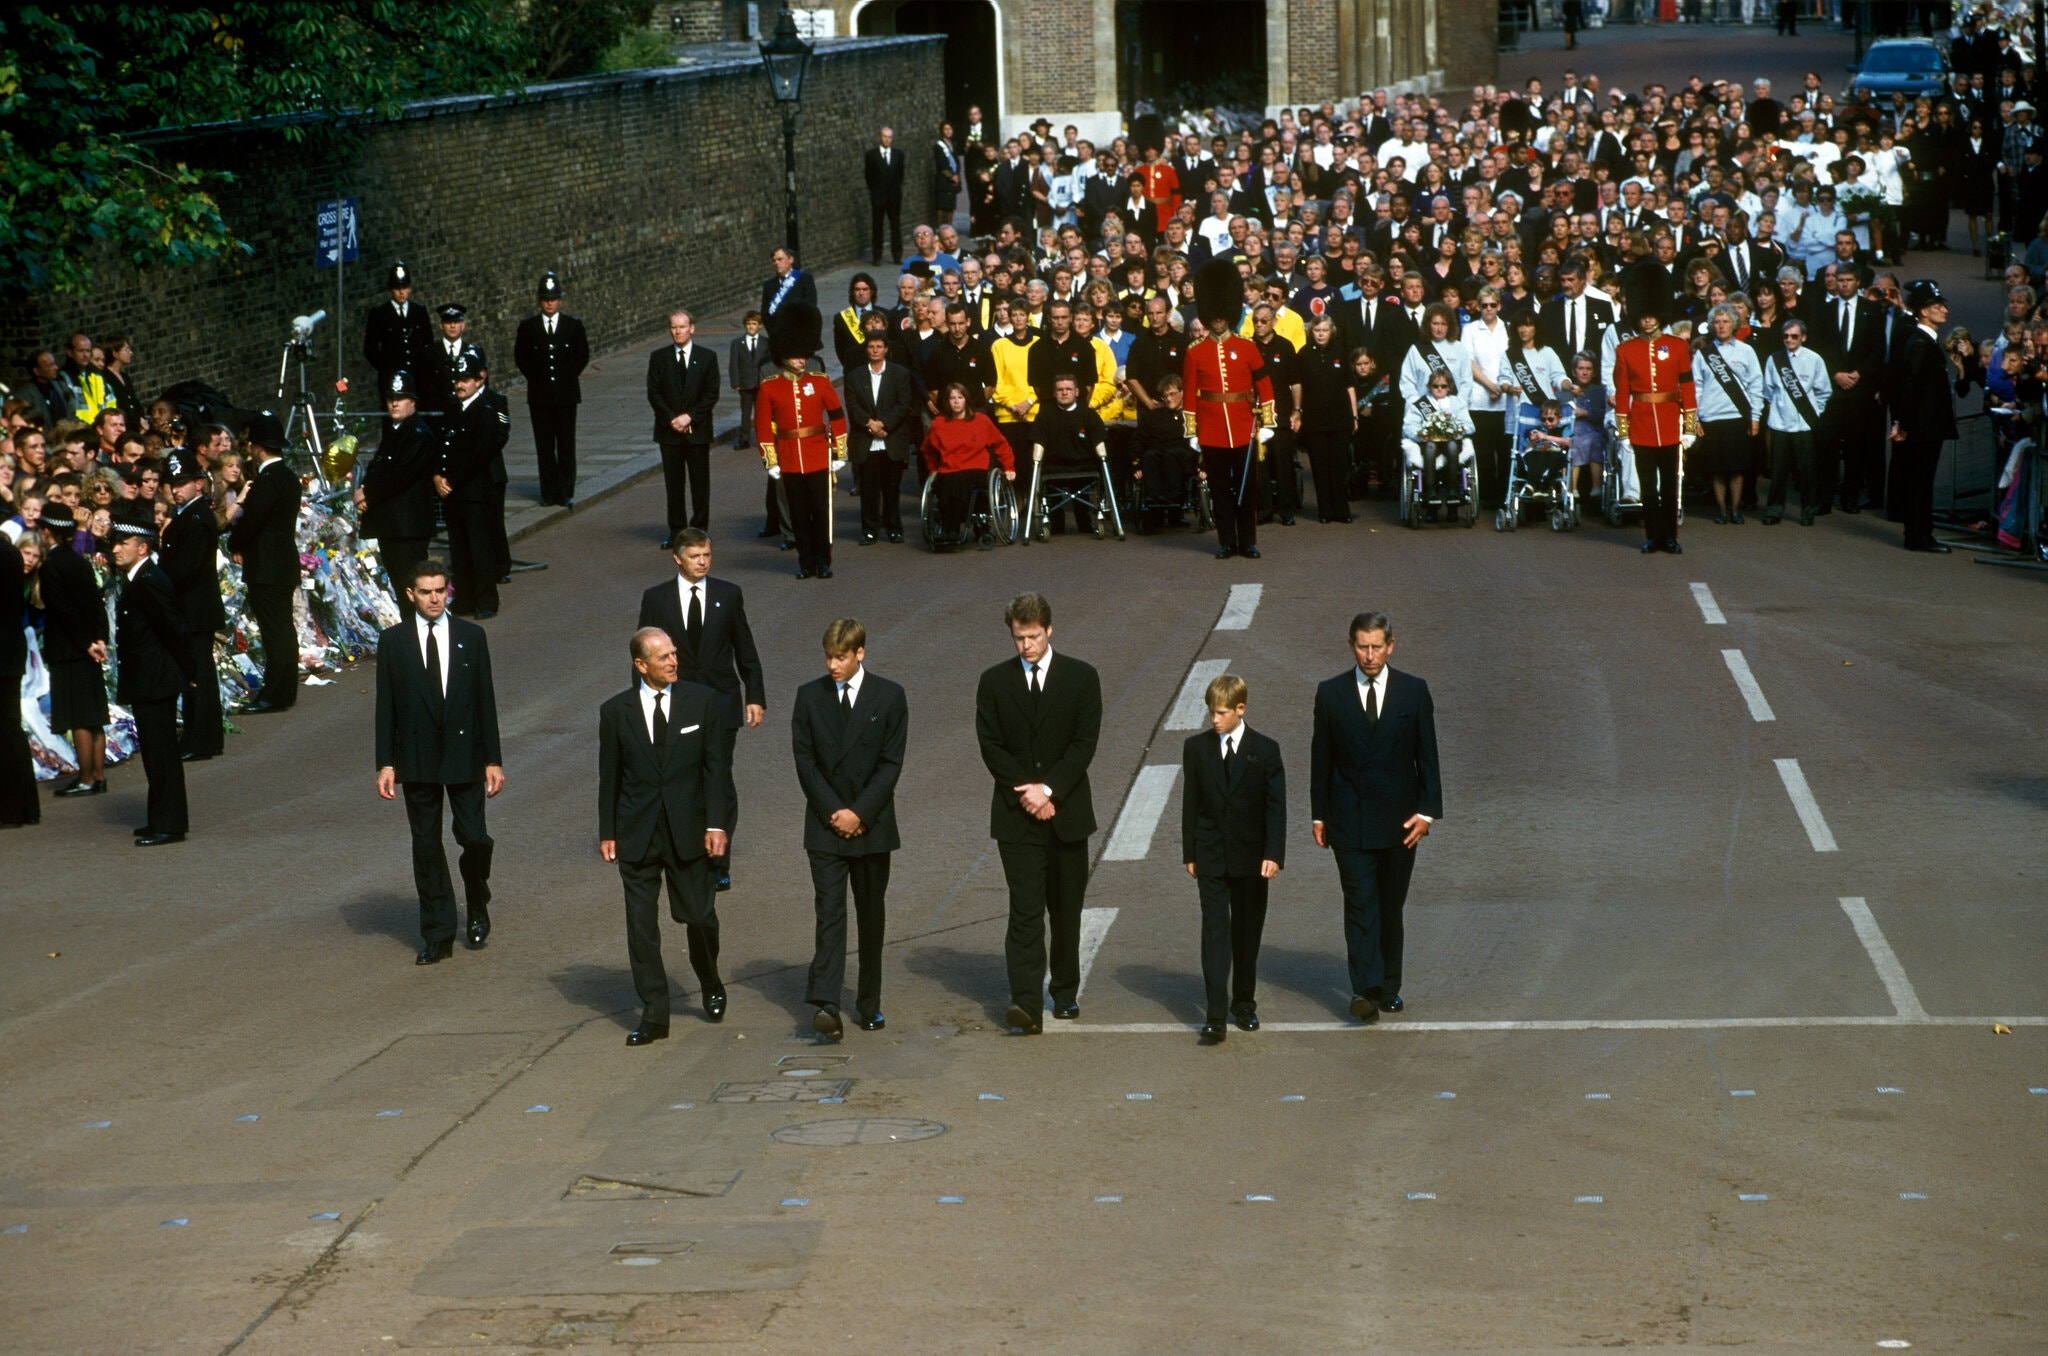 Front from left, Prince Philip, Prince William, Earl Spencer, Prince Harry and Prince Charles at the funeral of Diana, Princess of Wales, in 1997.Credit...John Shelley Collection/Avalon, via Getty Images